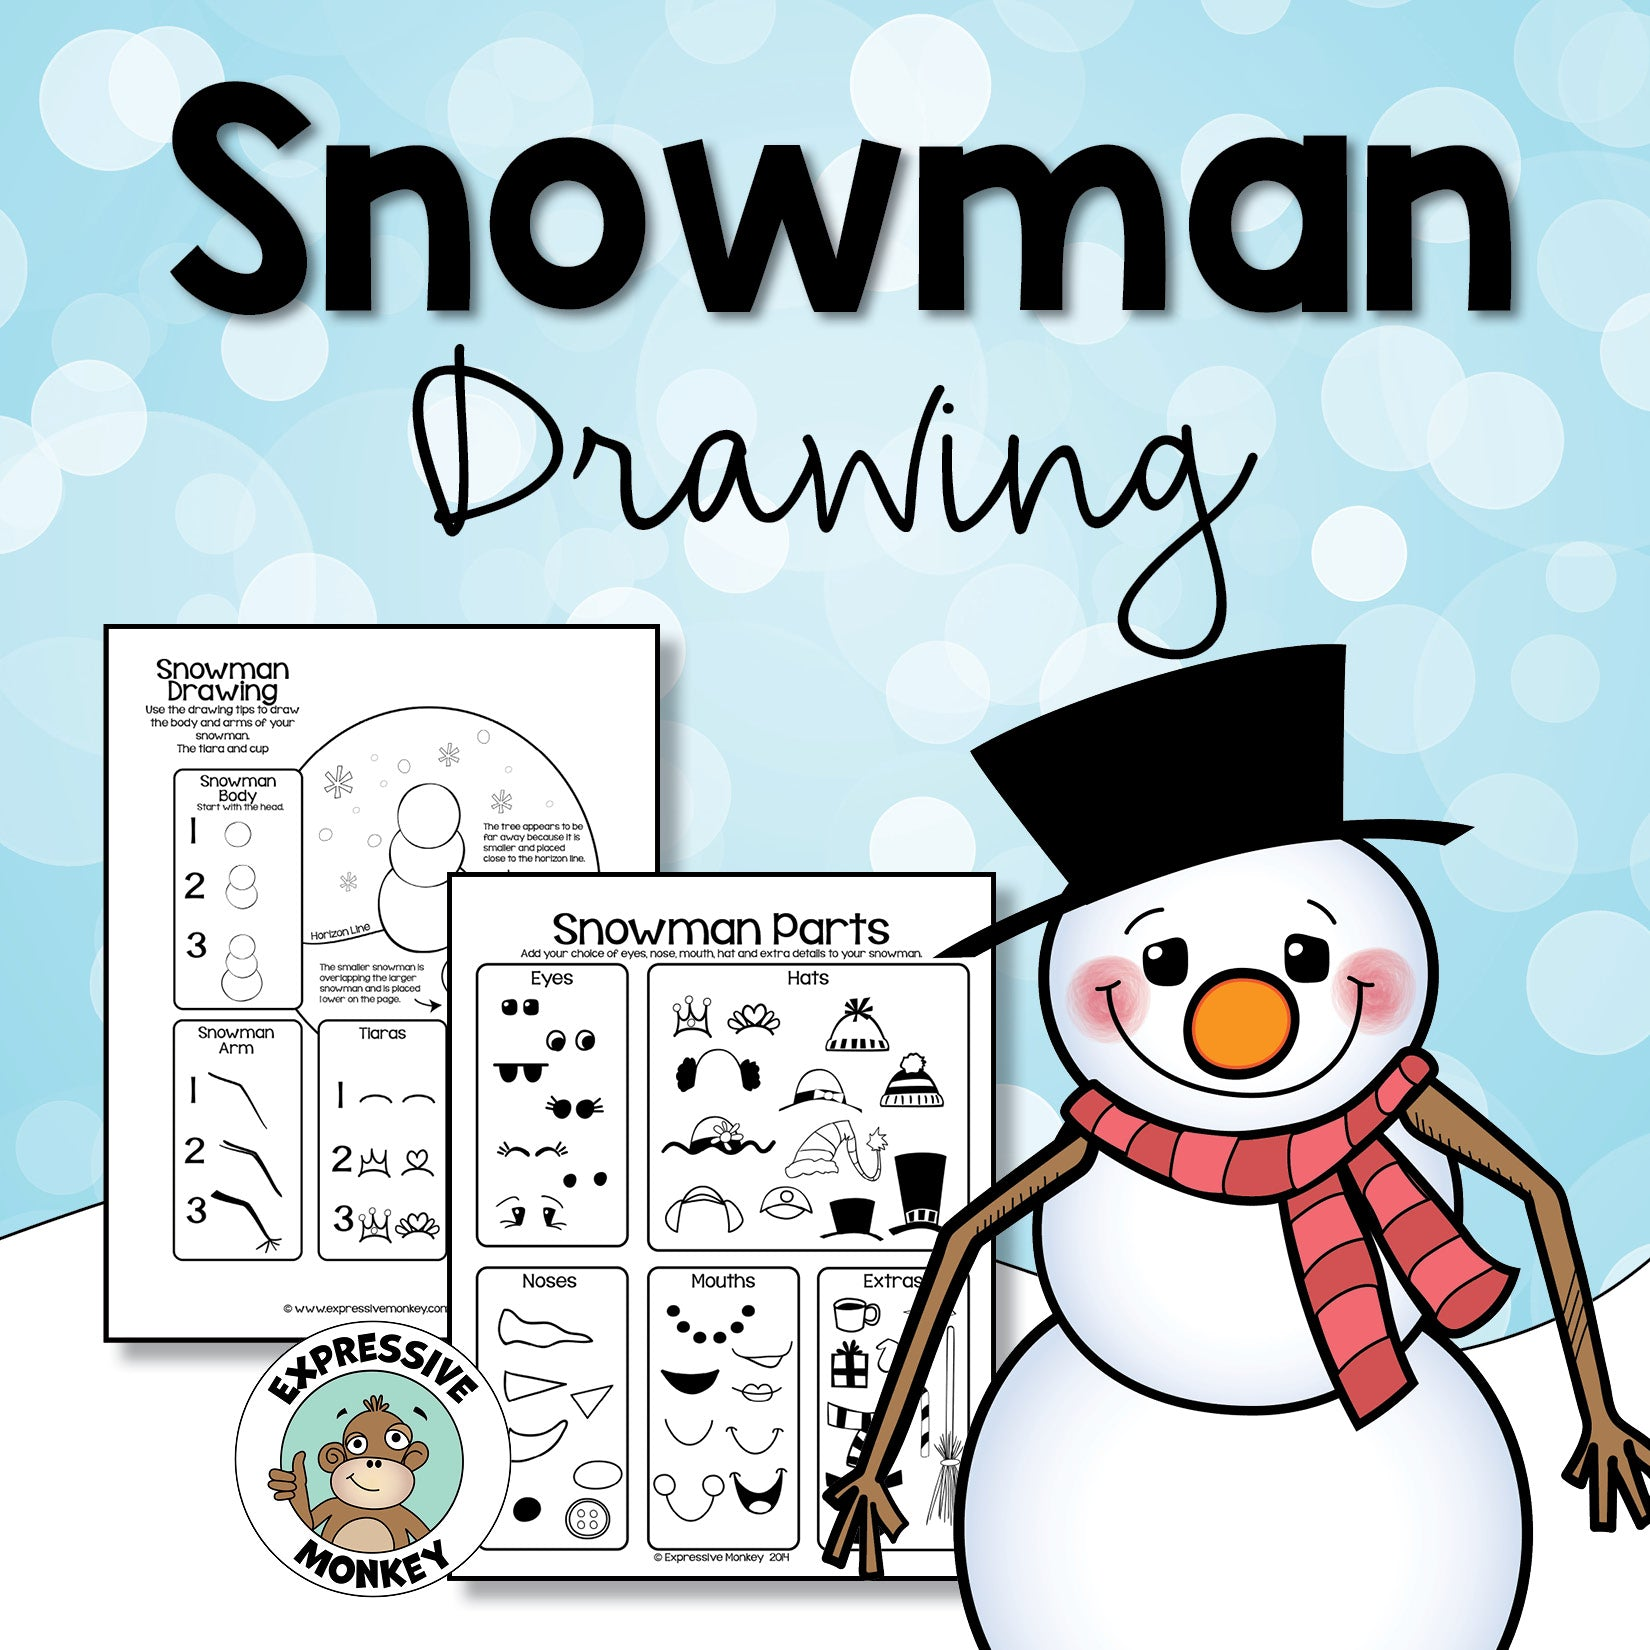 Snowman Drawing  - Winter Art Activity